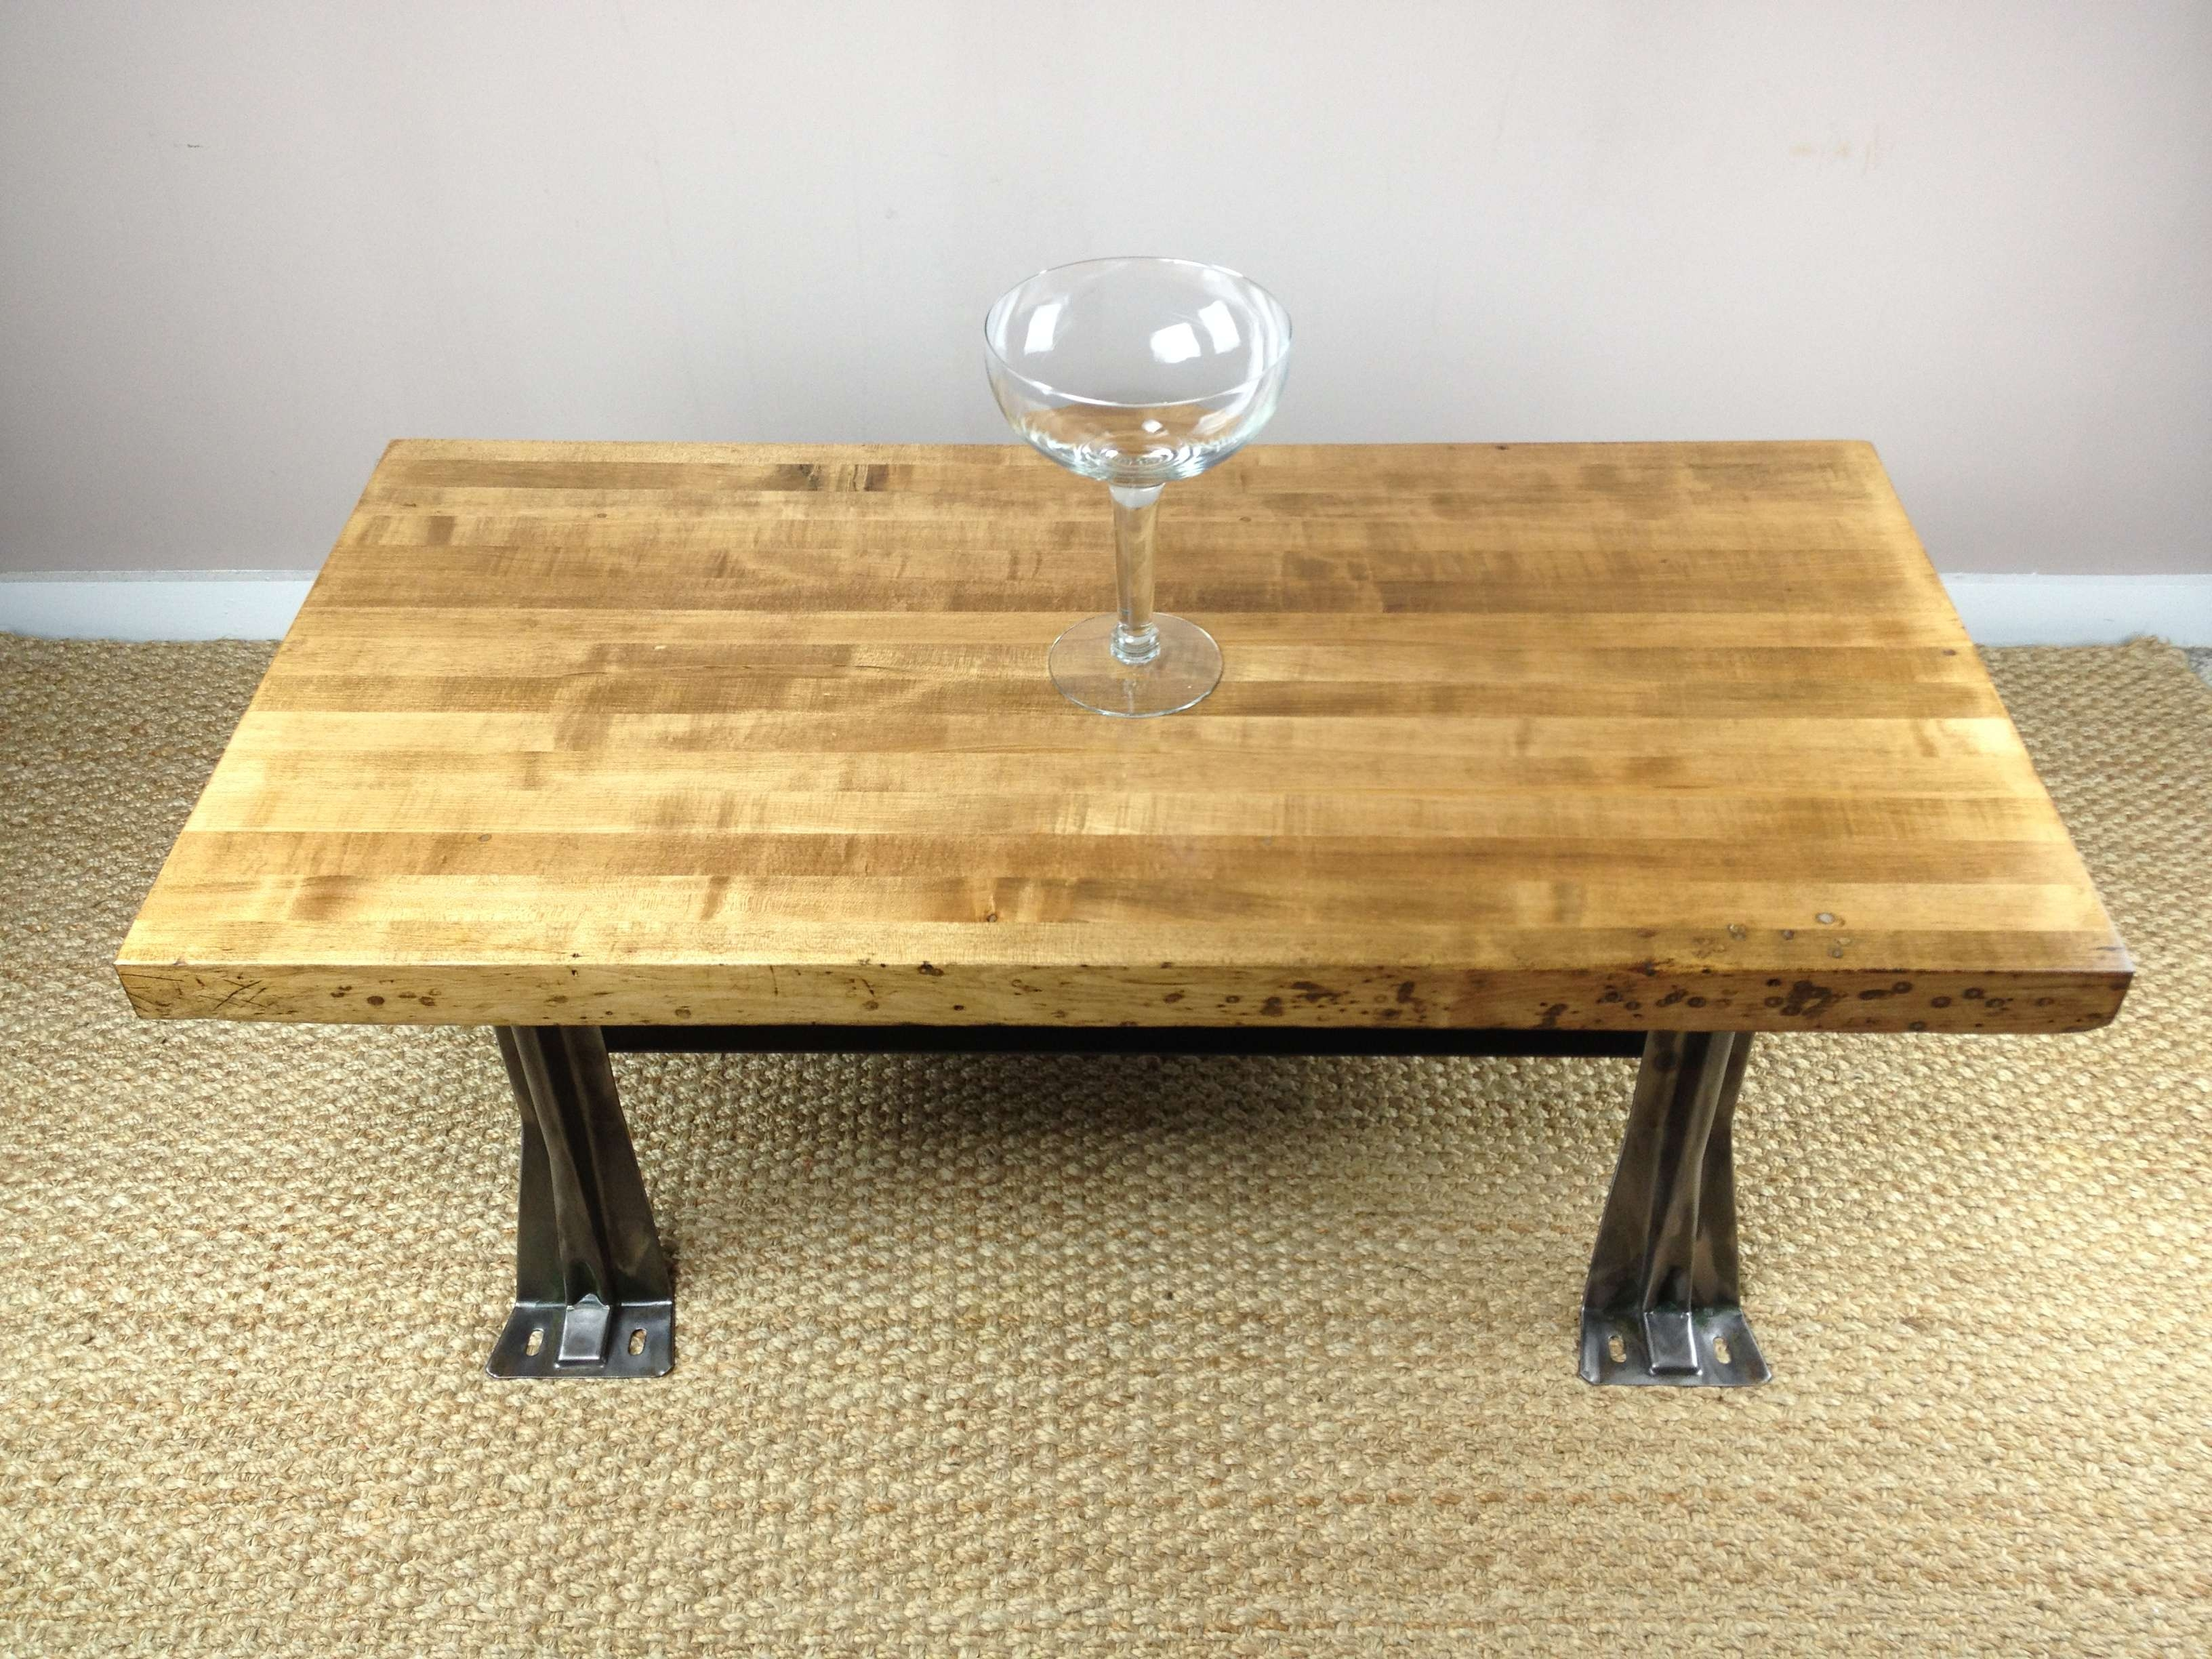 Preferred Large Low Rustic Coffee Tables For Diy Custom Square Low Coffee Table Using Reclaimed Wood Top And (View 15 of 20)